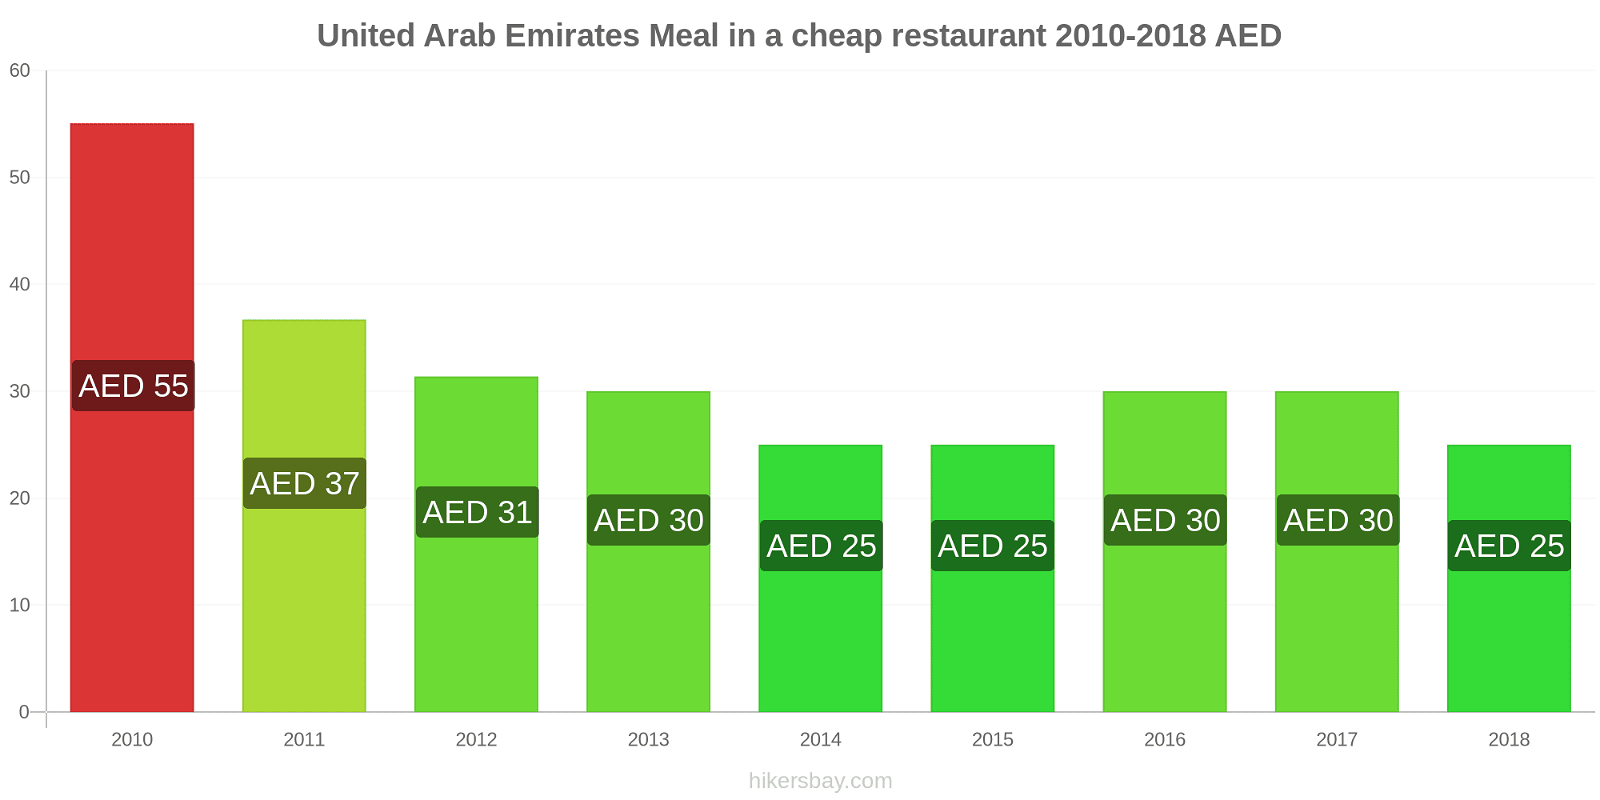 United Arab Emirates price changes Meal in a cheap restaurant hikersbay.com